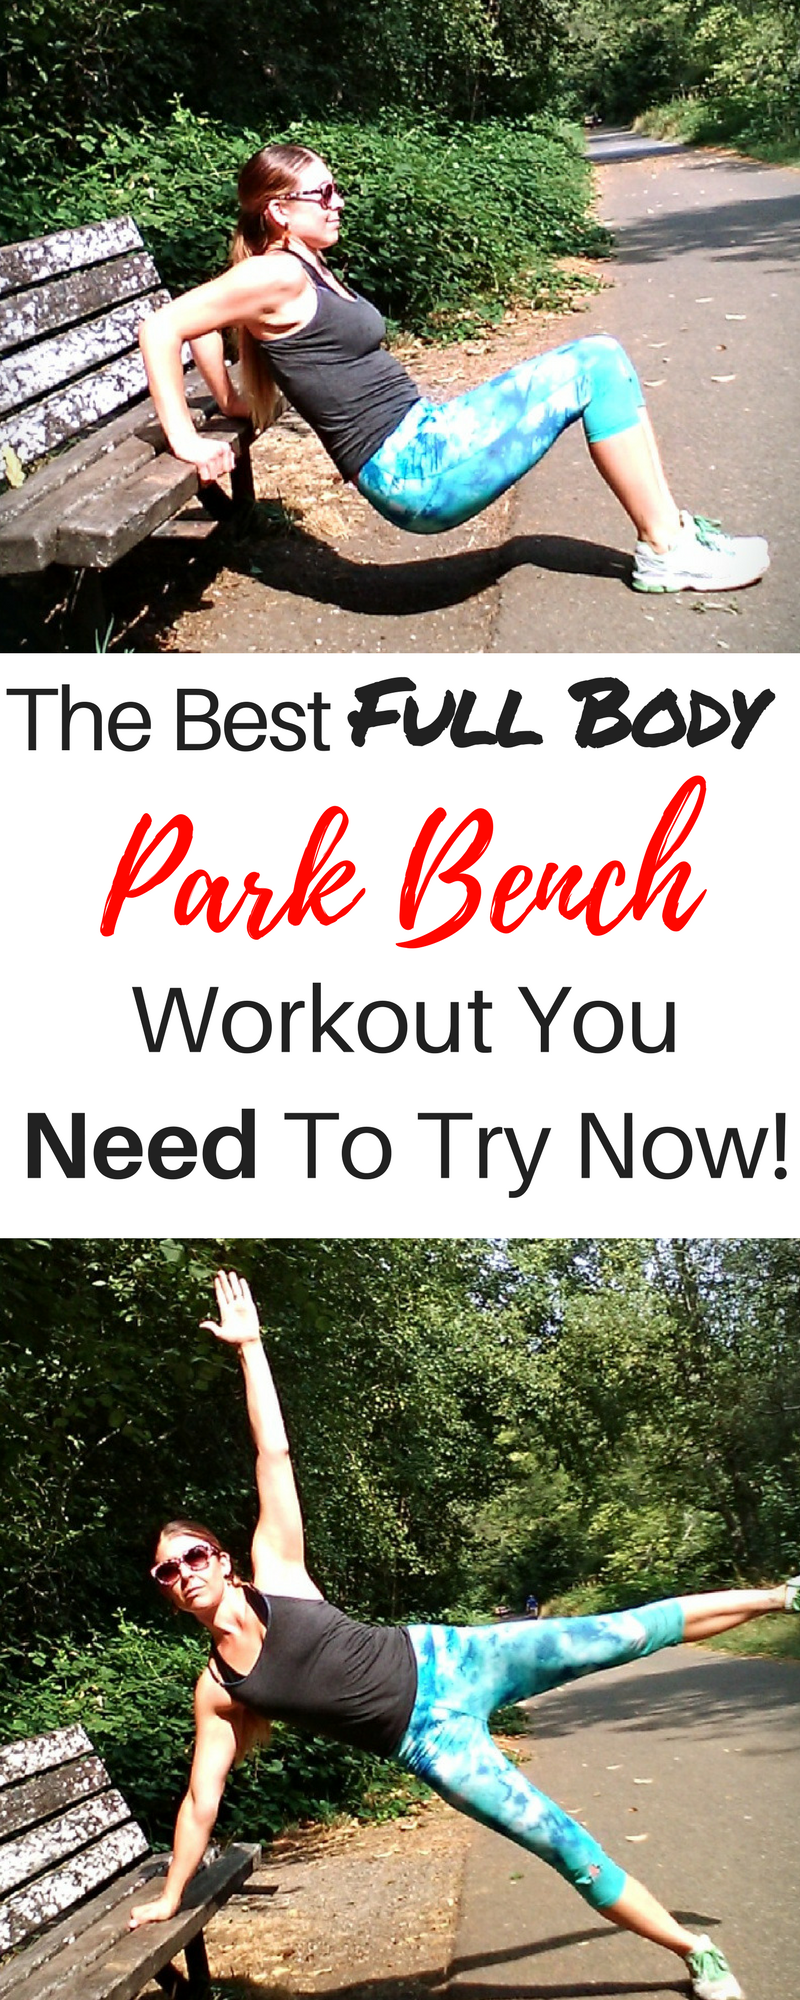 Full Body Toning Park Bench Workout That Can Be Done